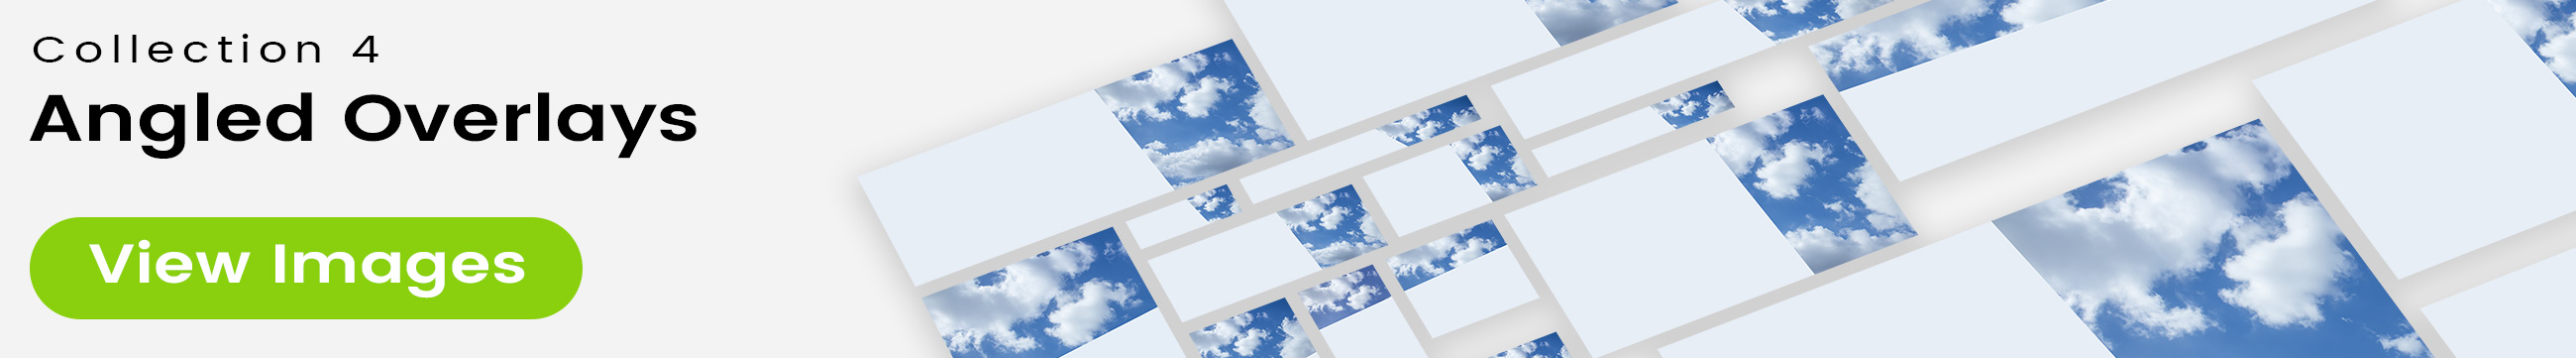 See 25 bonus images included with clouds stock image 9504. Collection 4 of 4 features an angled overlay design customized with a color that complements each photo.